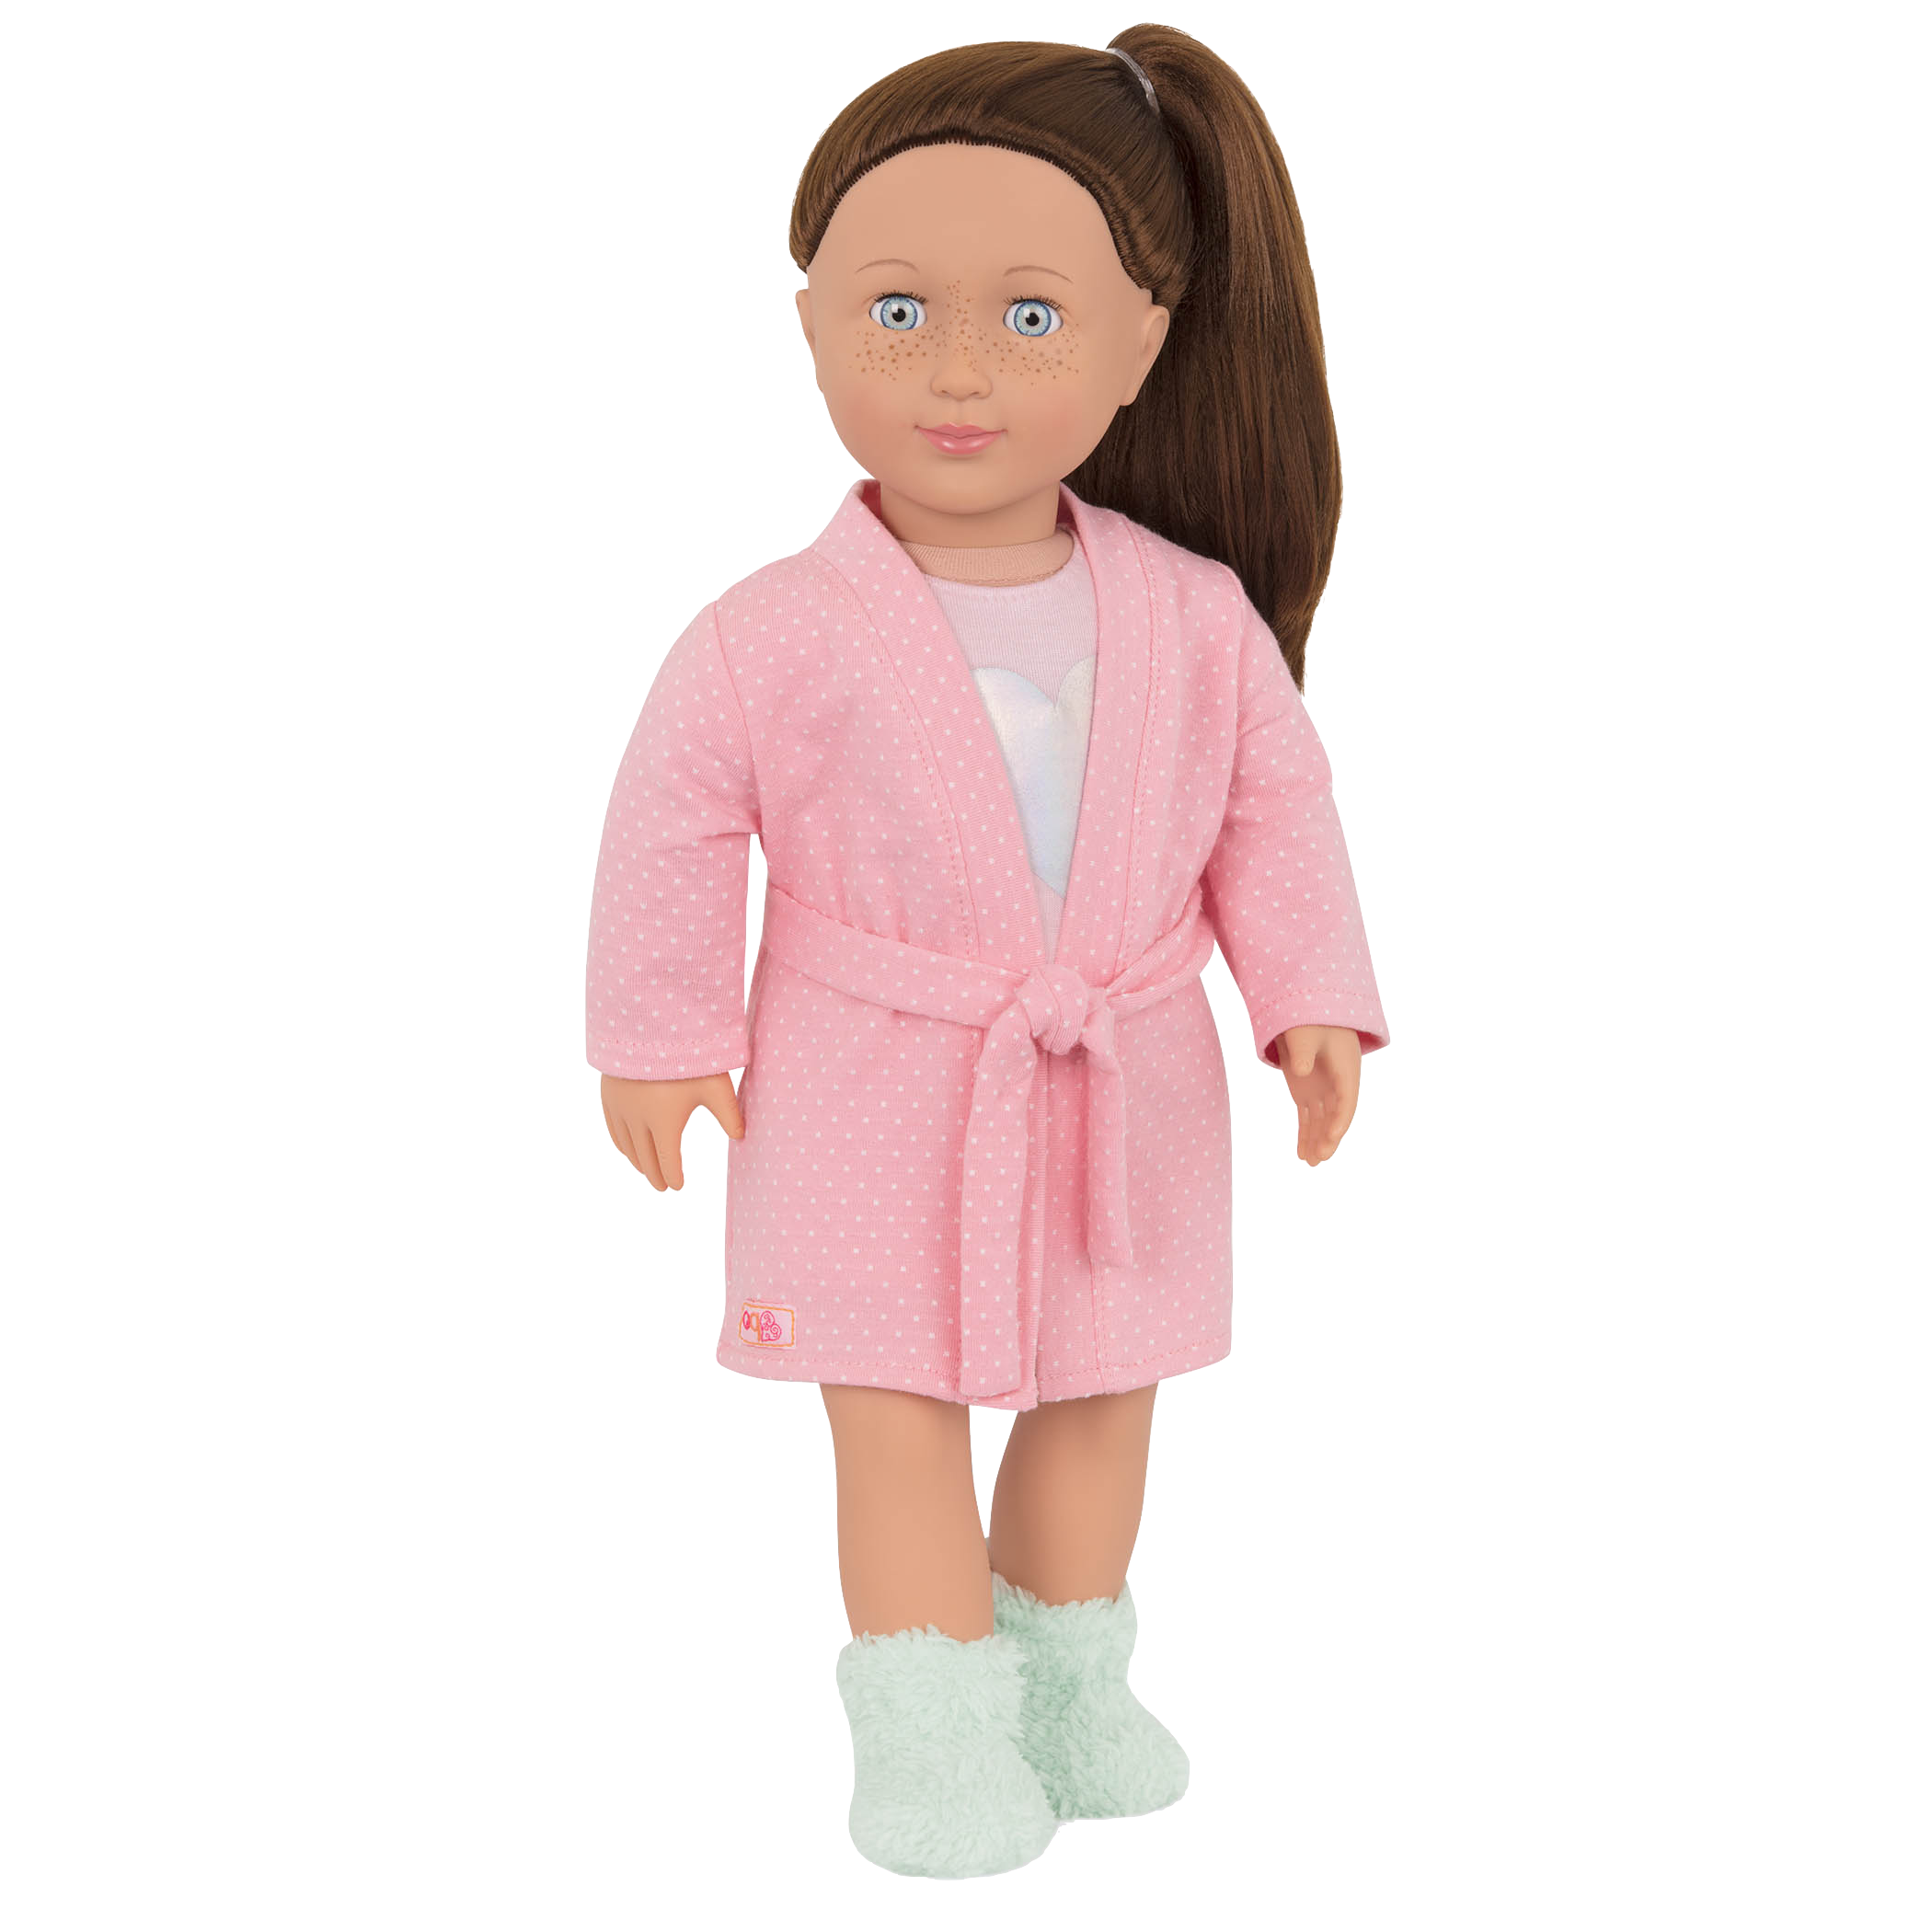 Meet Lake, an adorable sleepover doll with fuzzy socks!